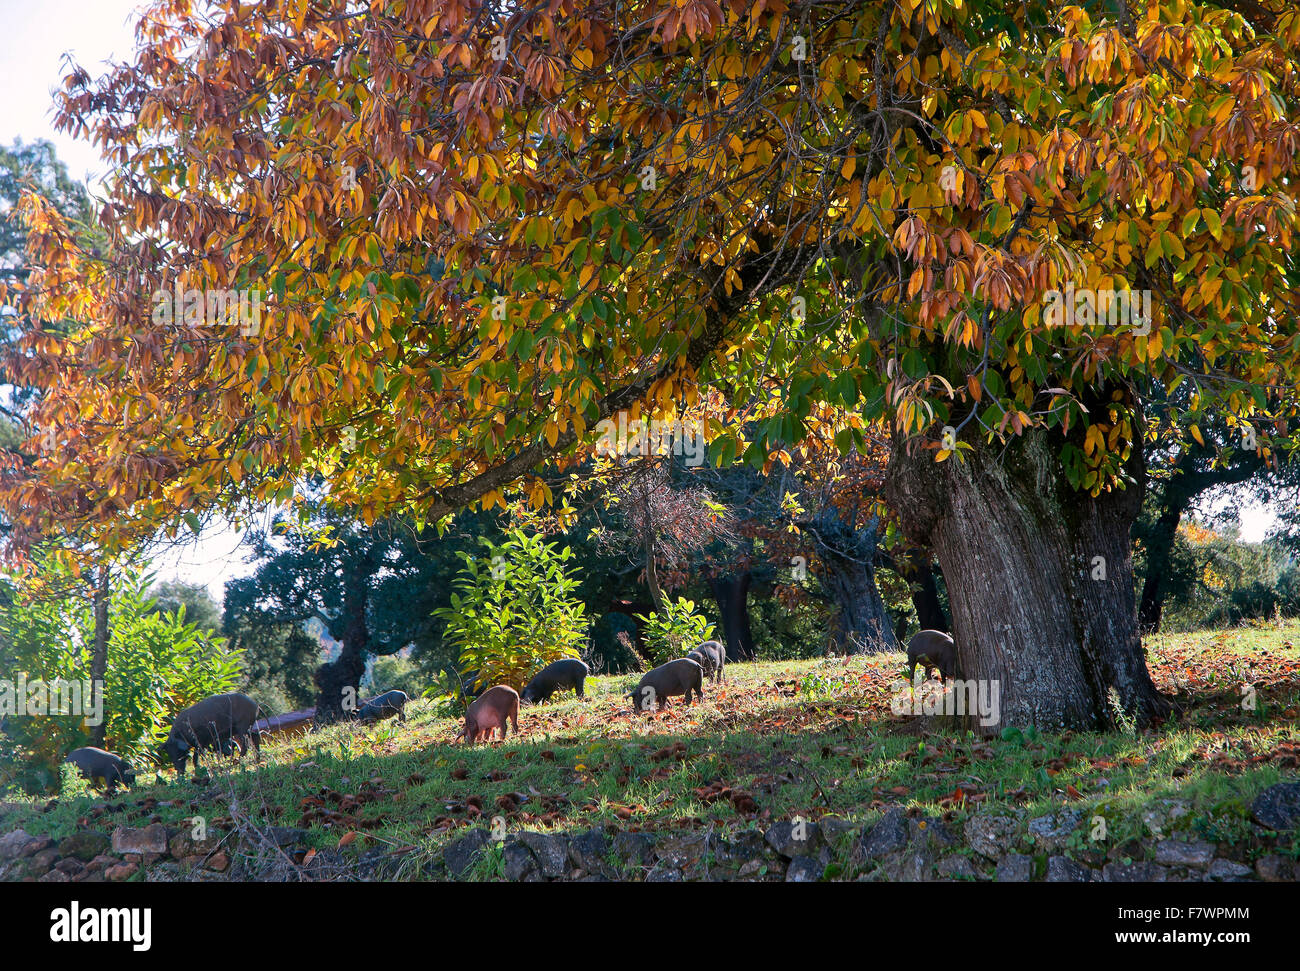 Sierra de Aracena Natural Park, Pigs in meadows, Santa Ana La Real, Huelva province, Region of Andalusia, Spain, - Stock Image